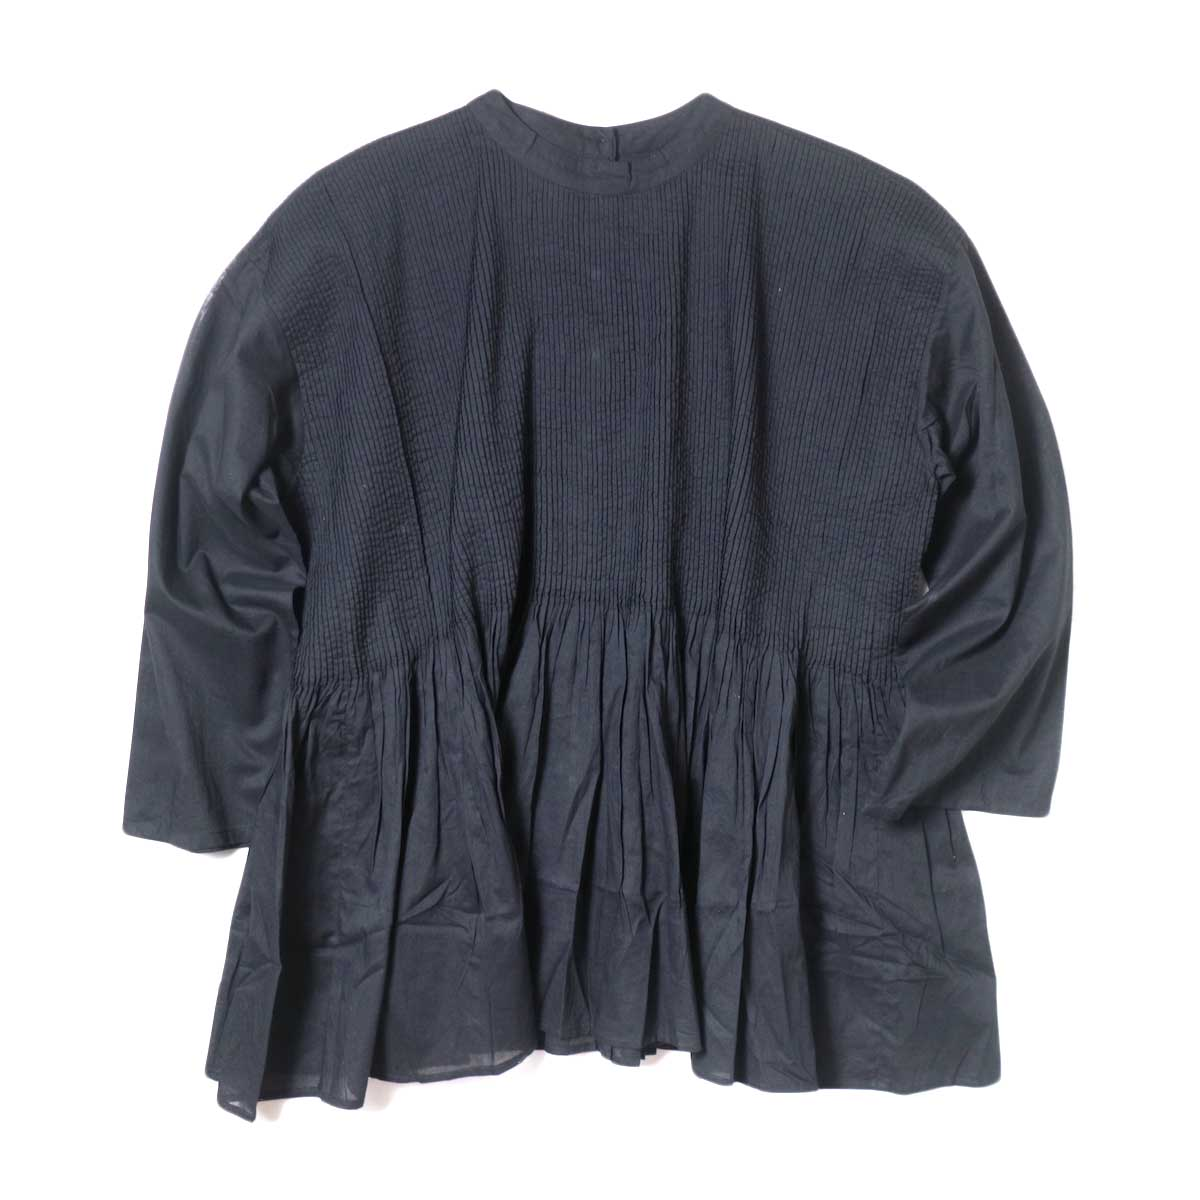 maison de soil / BACK OPENING STAND COLLAR SHIRT WITH MINI PINTUCK (Black) 正面